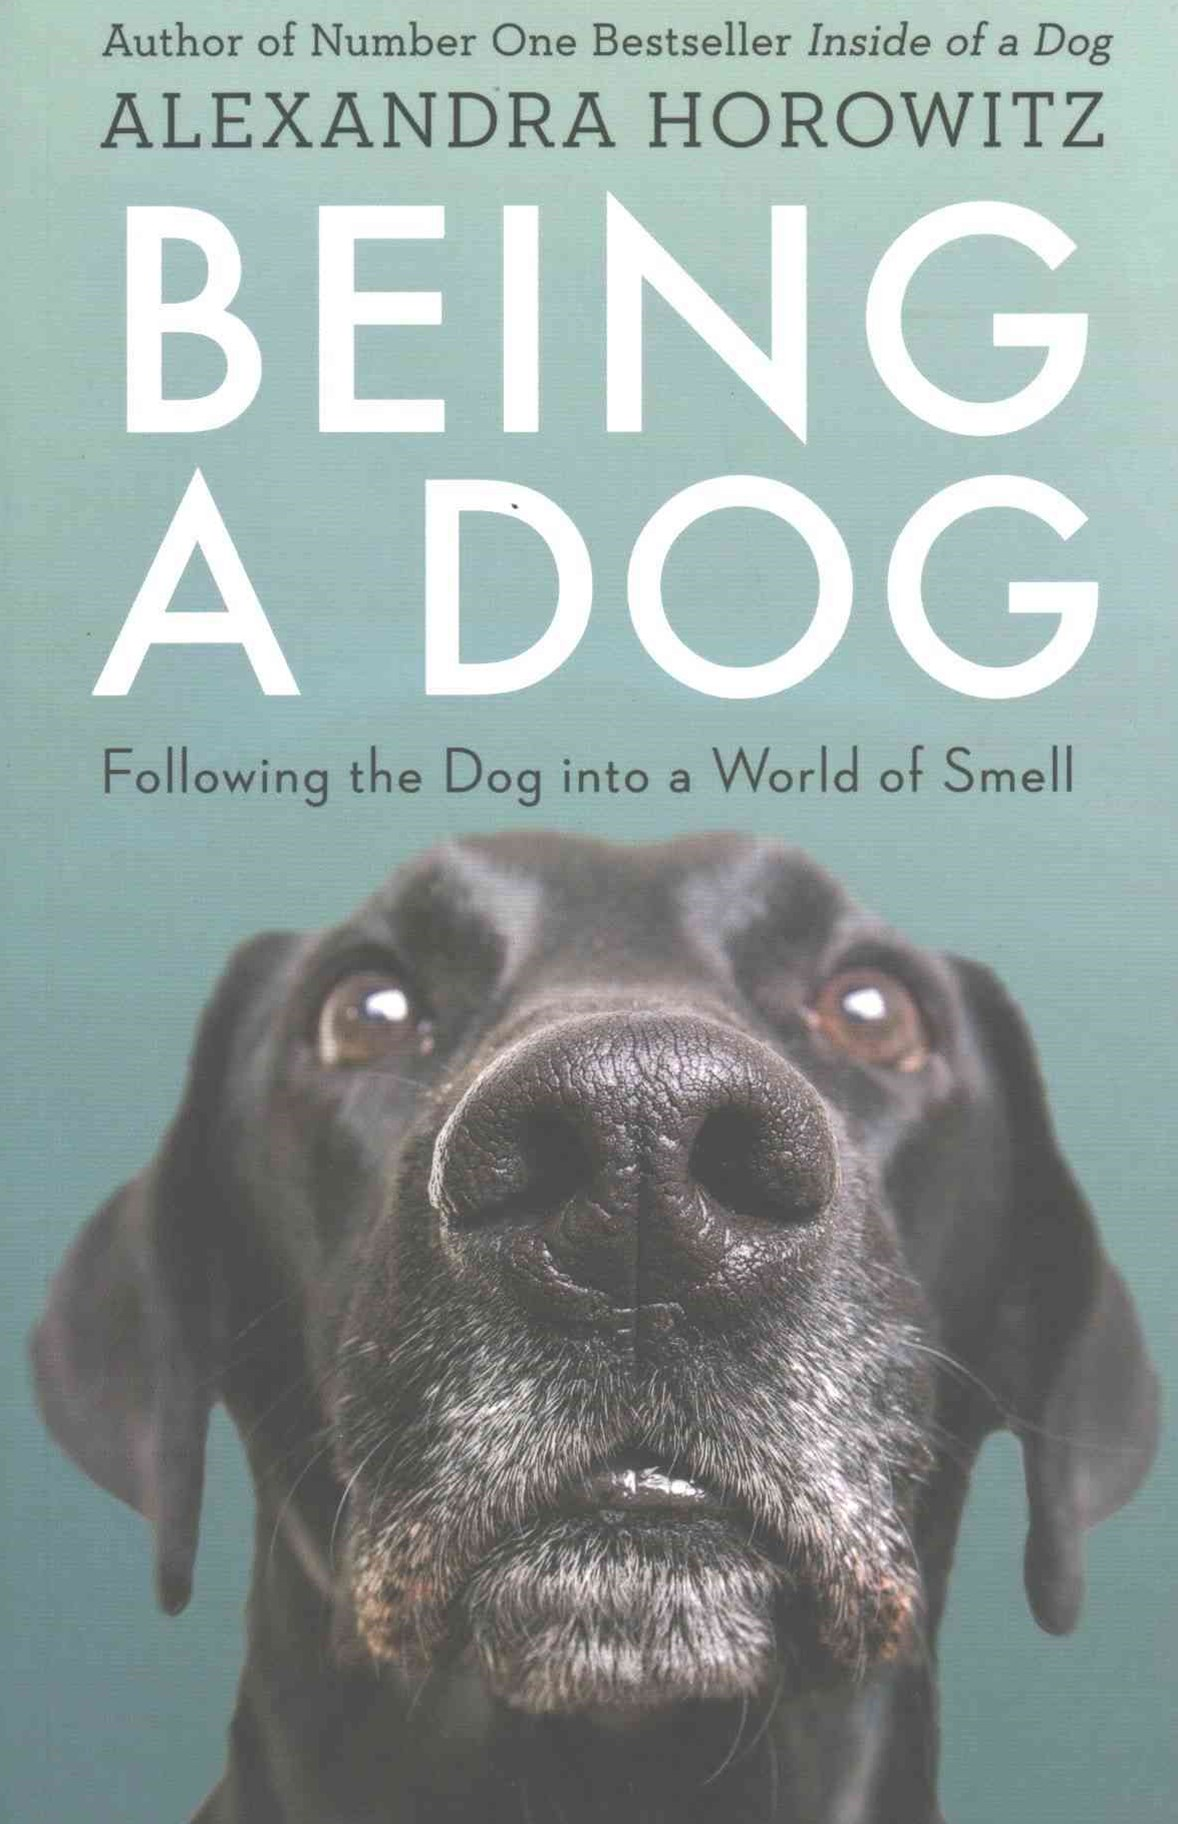 Being a Dog: Following the Dog into a World of Smell